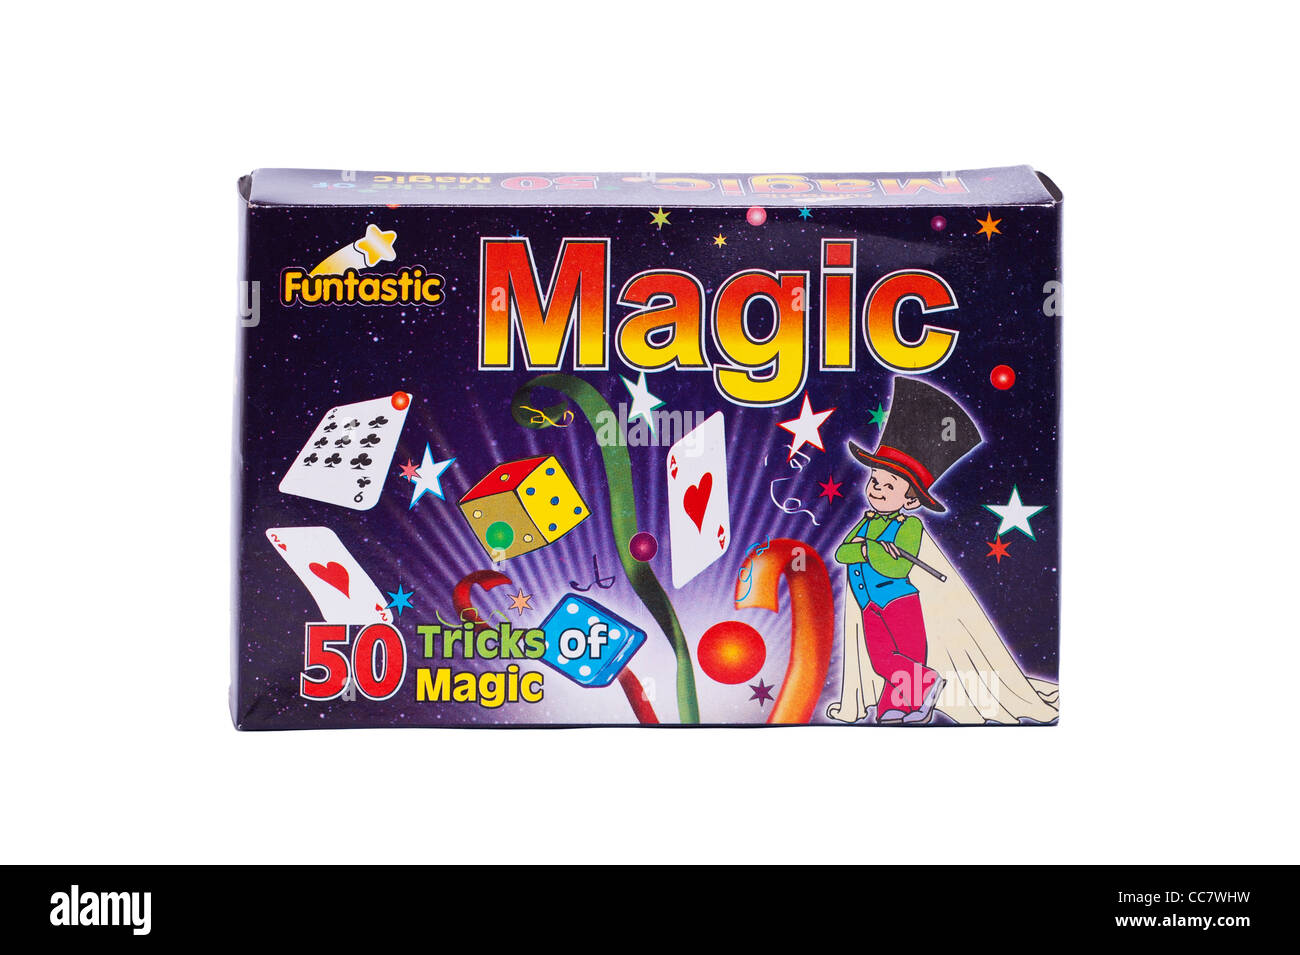 A box of 50 magic tricks on a white background - Stock Image